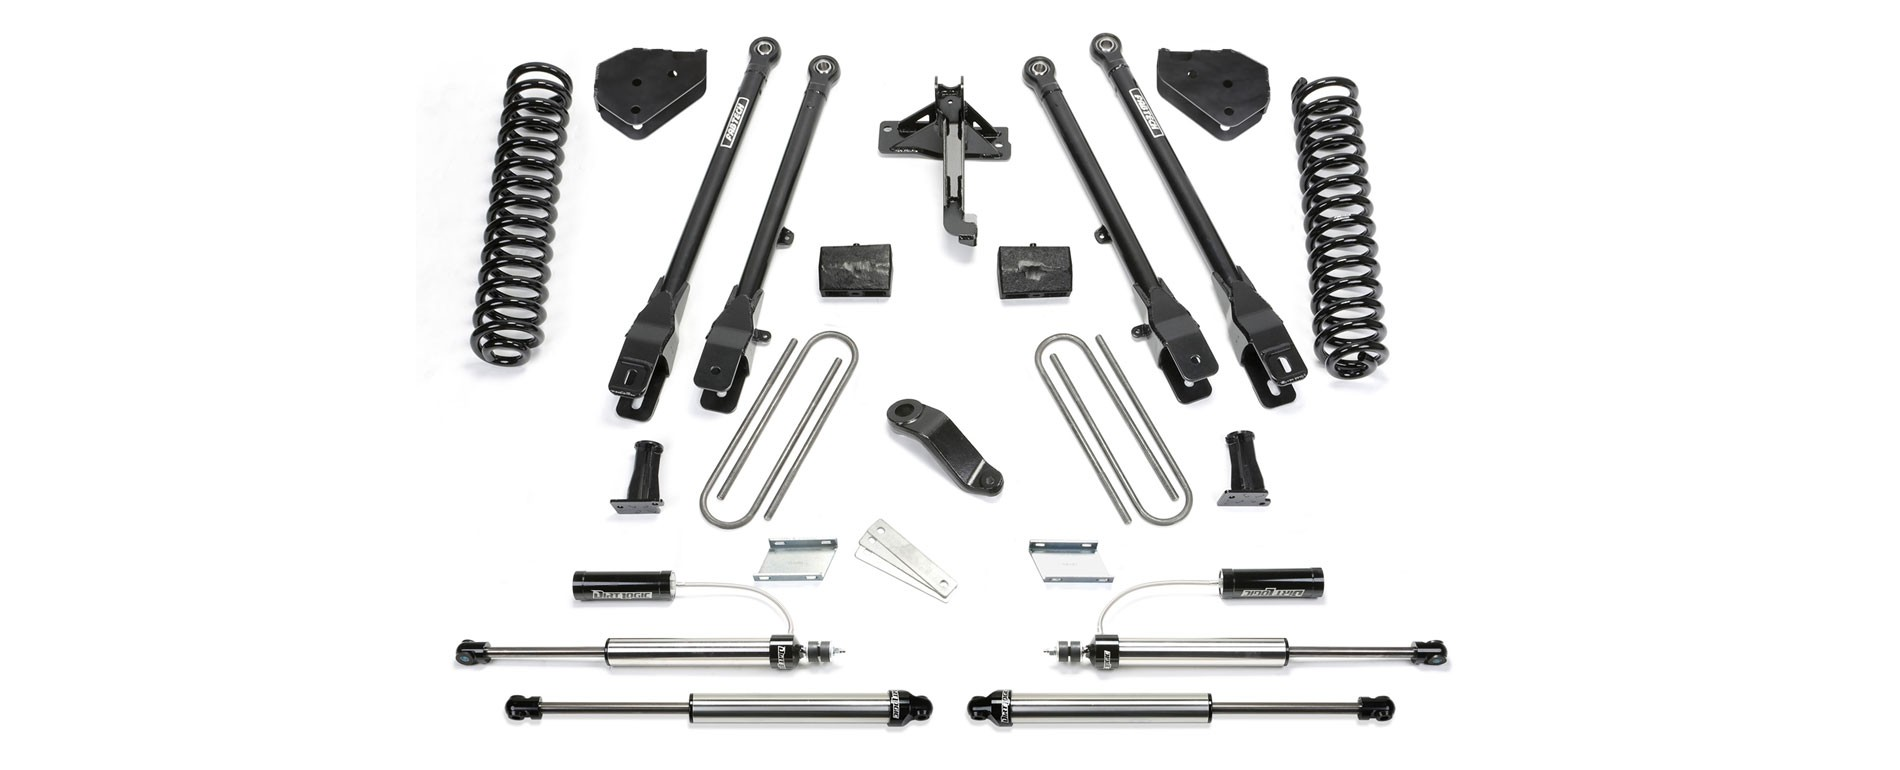 "FABTECH - 2017  4"" 4 Link System w/ Front Dirt Logic 2.25 Resi Shocks & Rear Dirt Logic 2.25 Shocks - Ford F250/F350 4WD"